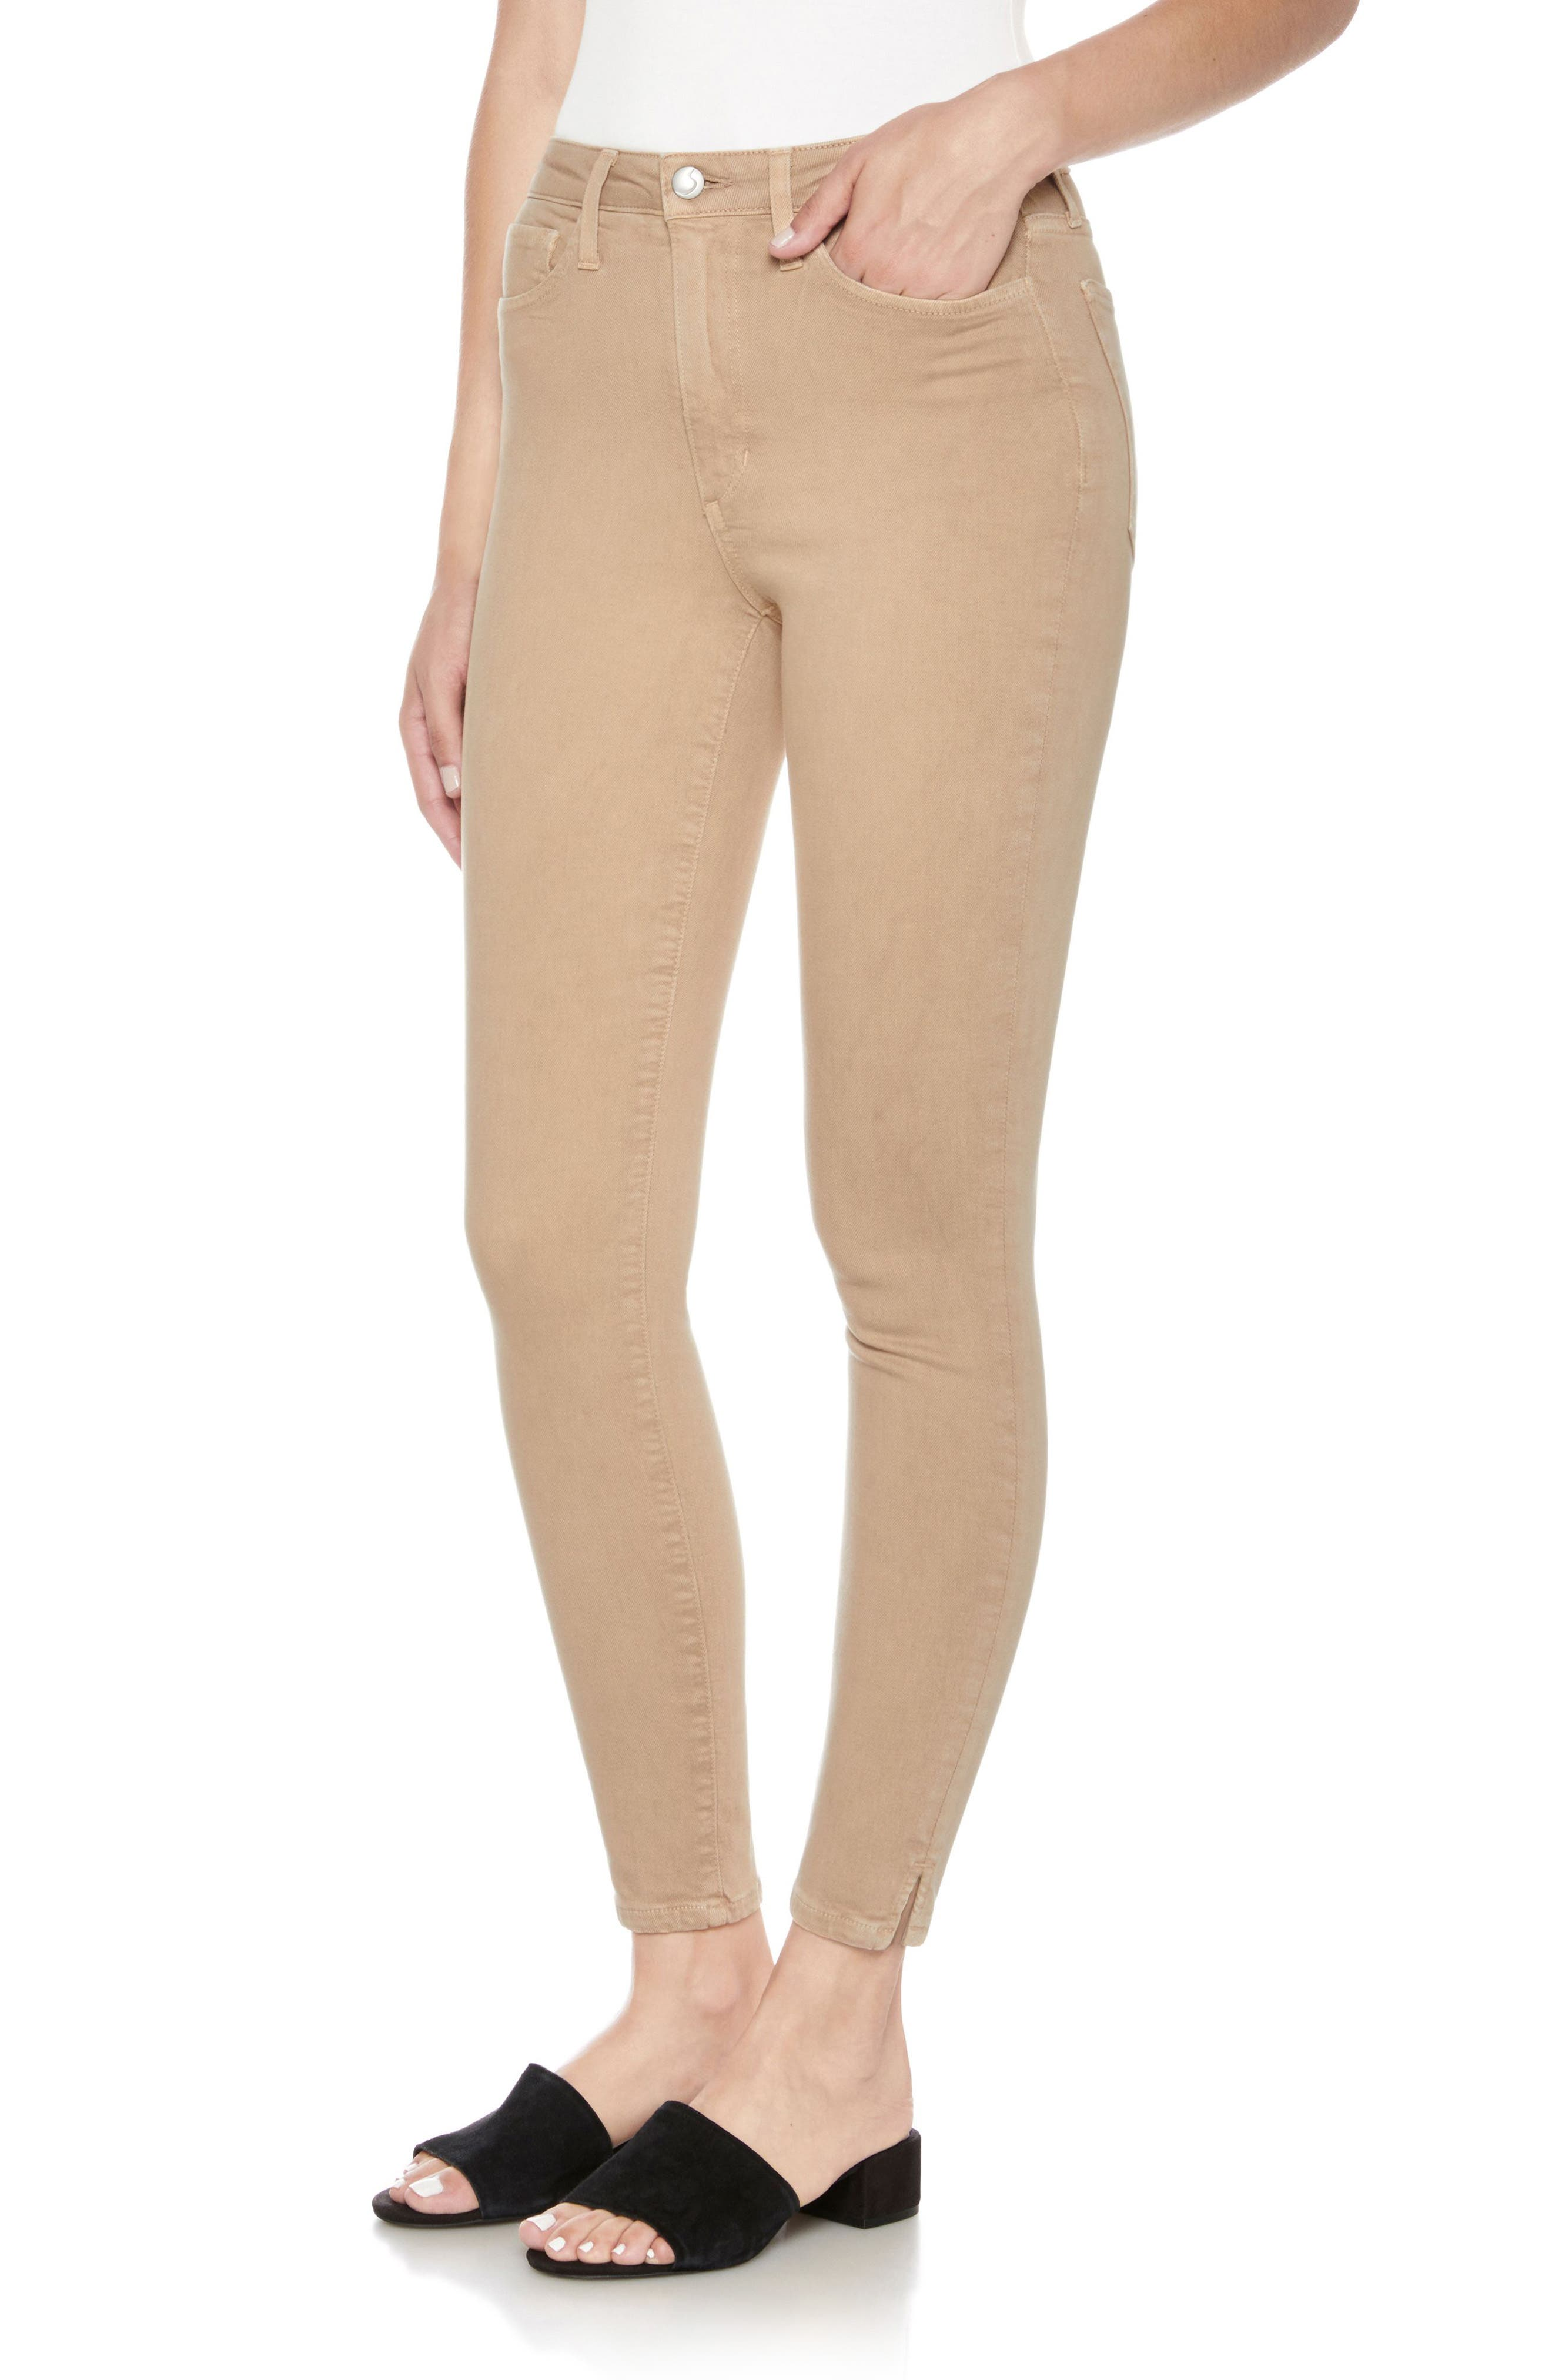 Charlie High Waist Ankle Skinny Jeans,                             Main thumbnail 1, color,                             275